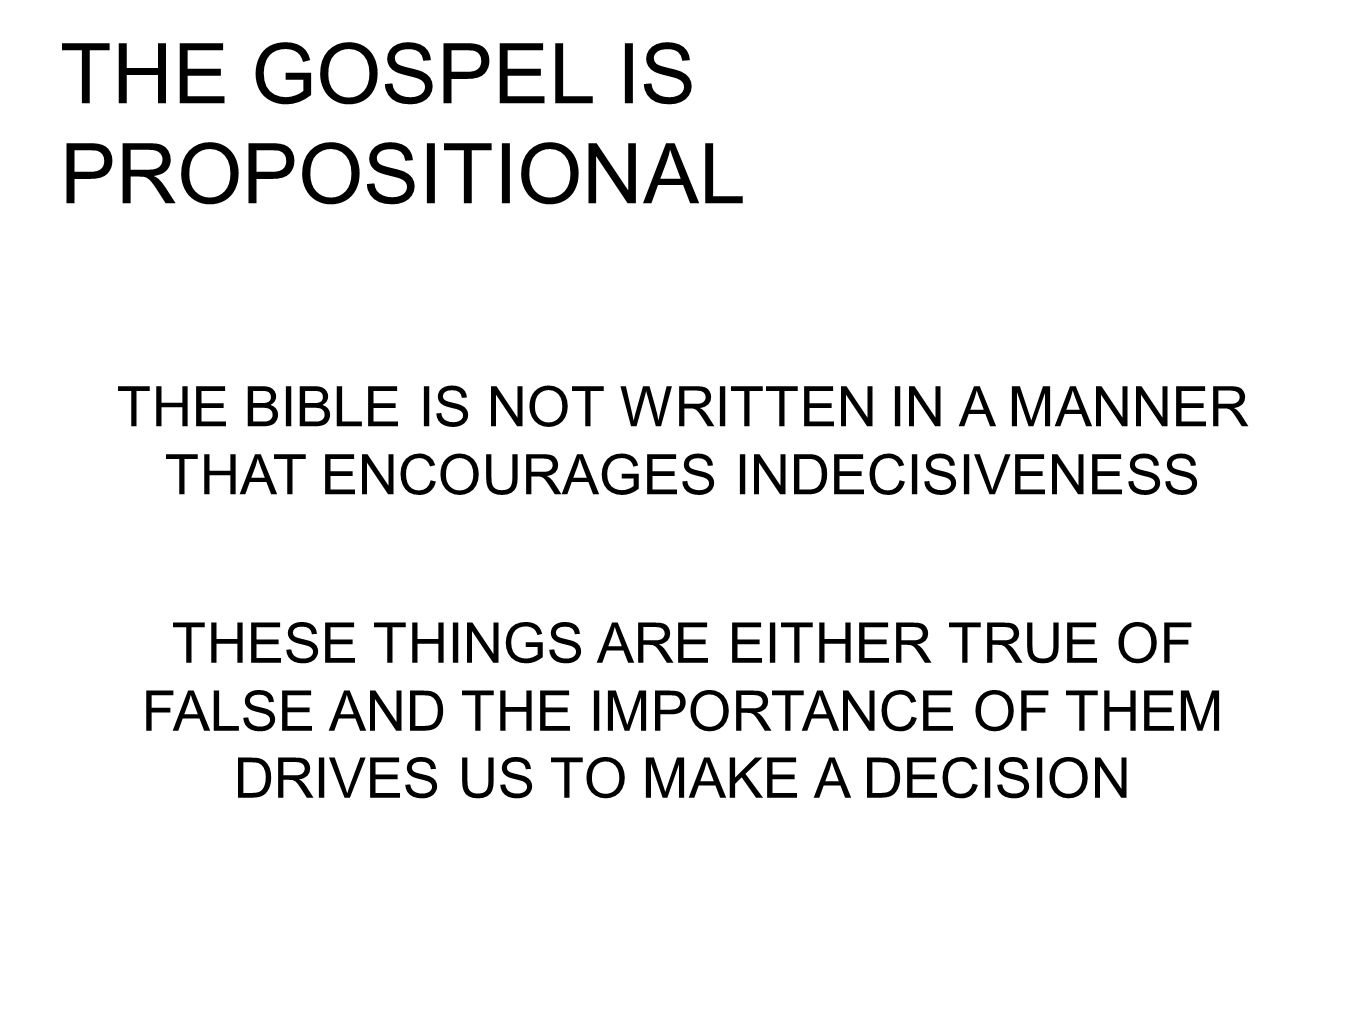 THE GOSPEL IS PROPOSITIONAL THE BIBLE IS NOT WRITTEN IN A MANNER THAT ENCOURAGES INDECISIVENESS THESE THINGS ARE EITHER TRUE OF FALSE AND THE IMPORTANCE OF THEM DRIVES US TO MAKE A DECISION